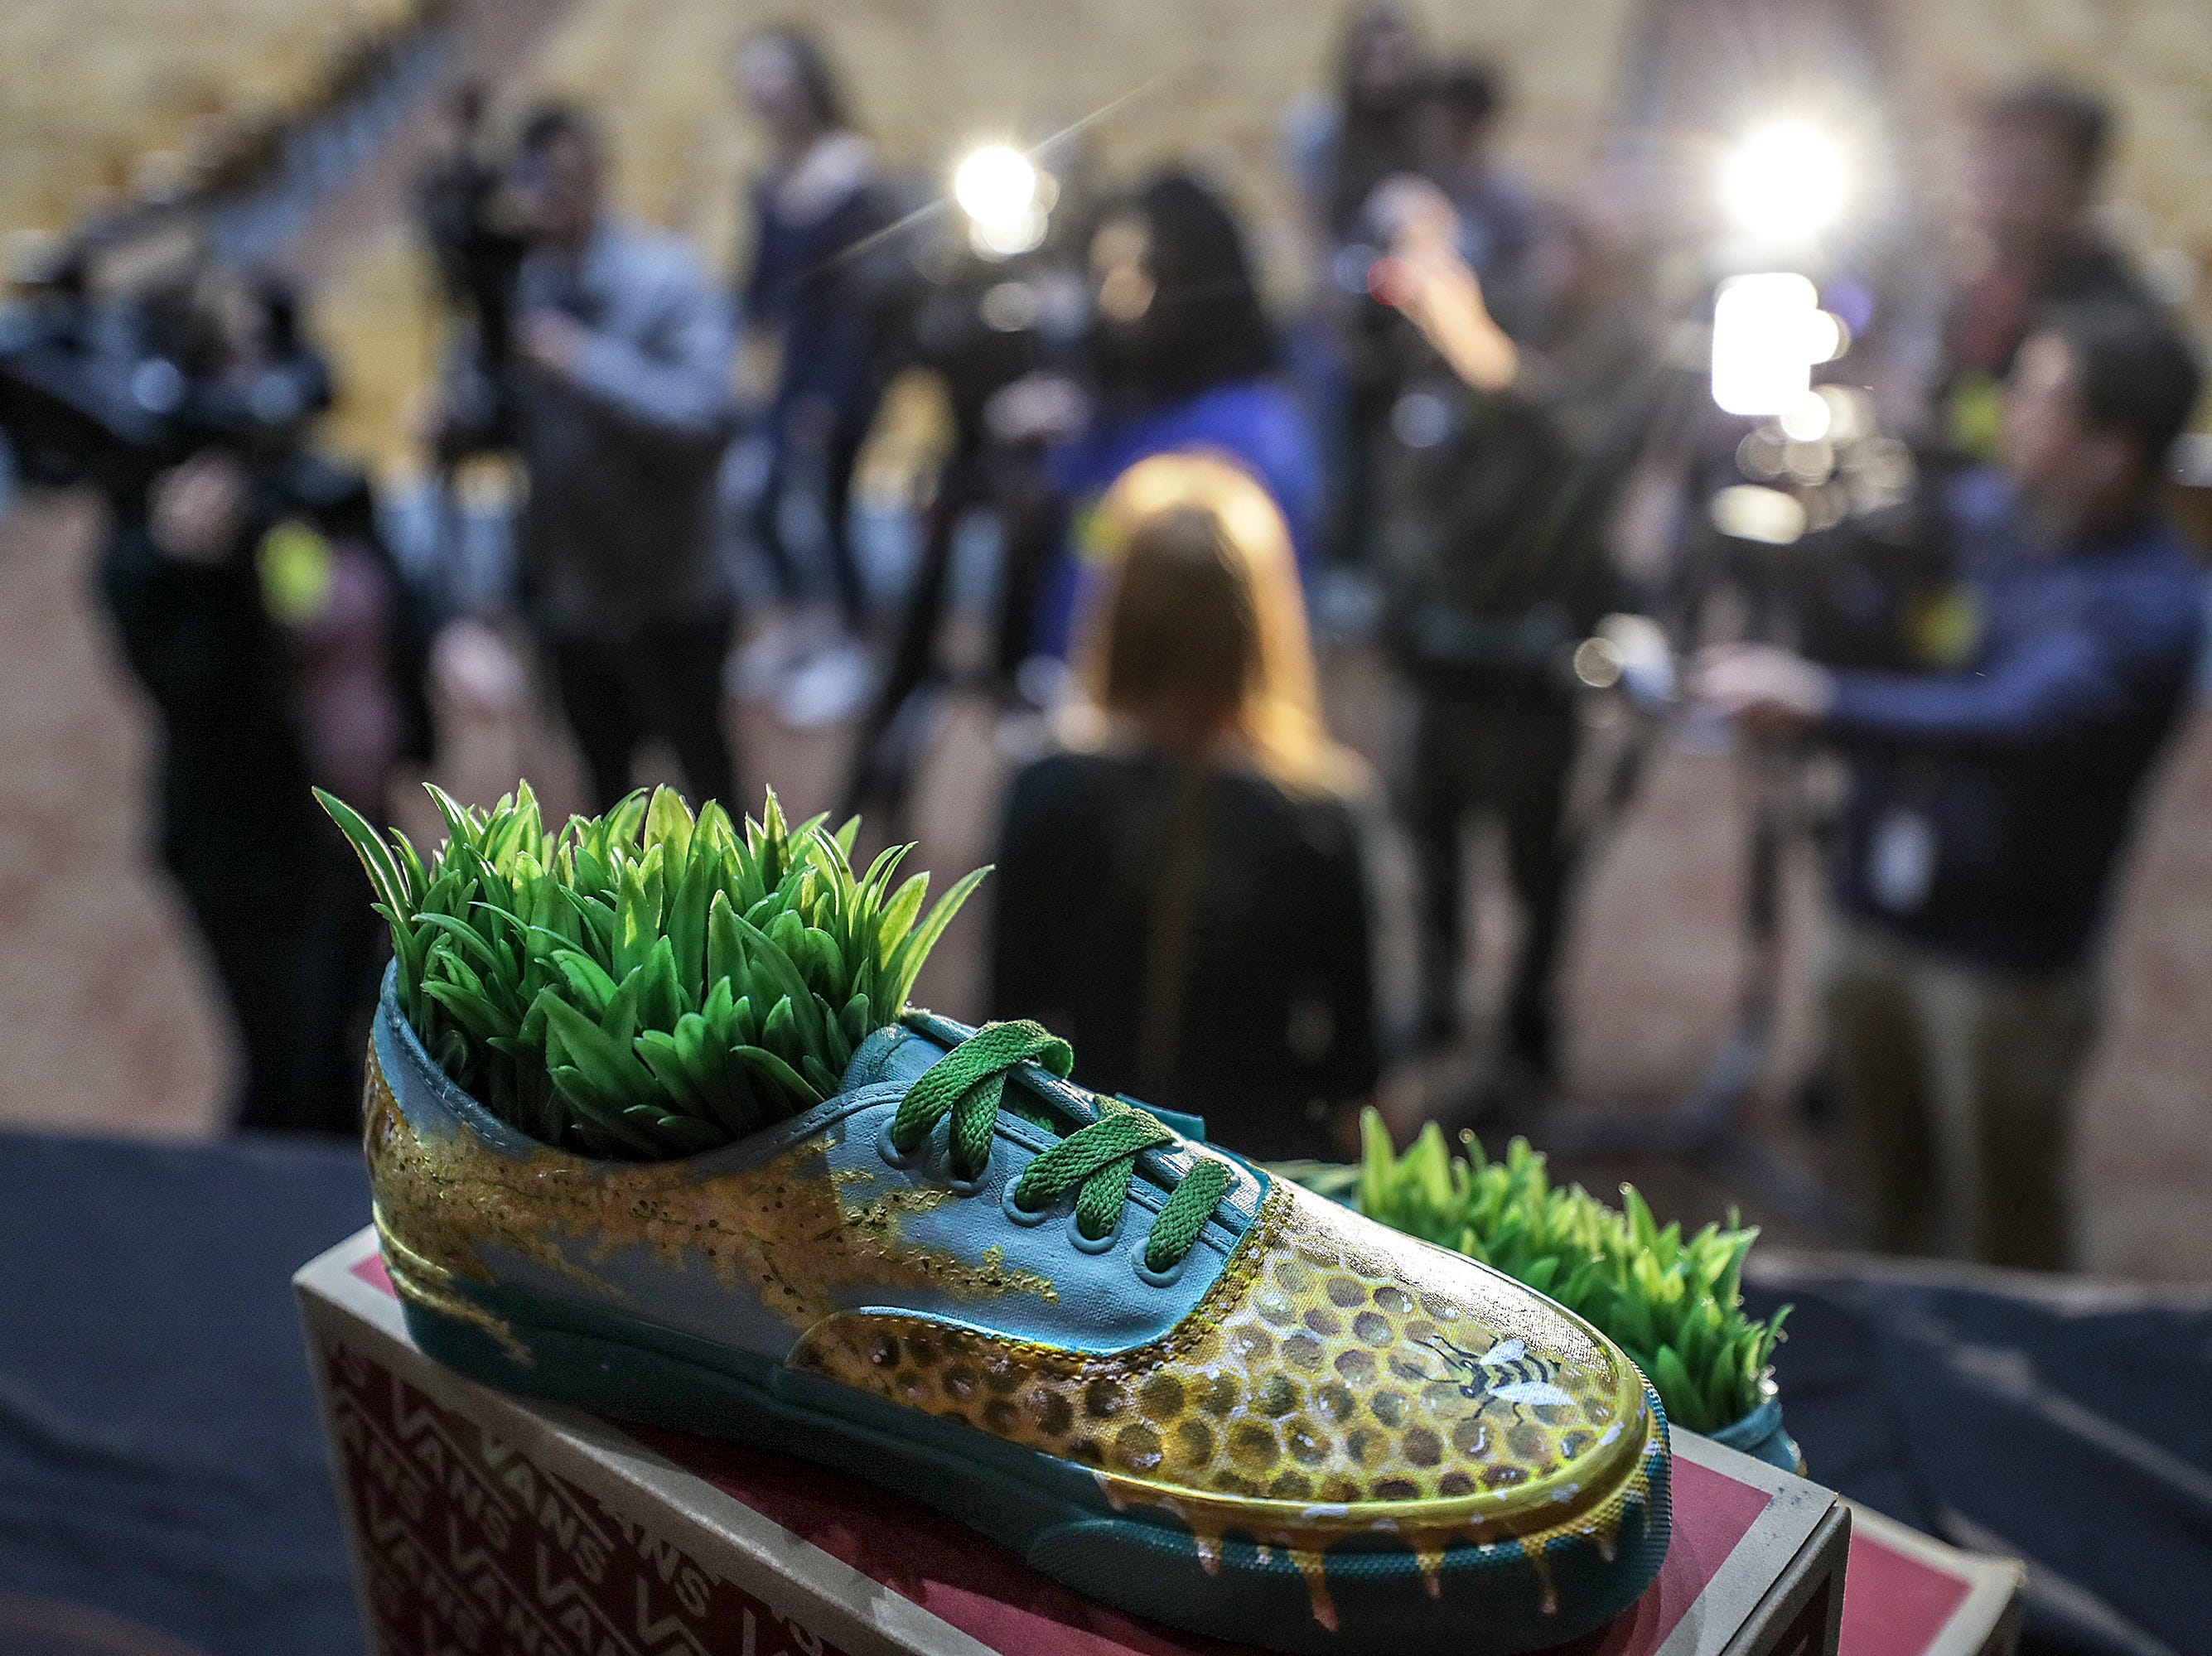 Atherton teacher Rachel Gibbs talks with the media after an assembly as part of the Vans Custom Culture contest.  The contest had students use the distinctive footwear to design shoes that depict their state.  Atherton was one of the runner ups and received $10,000 from Vans.May 14, 2019